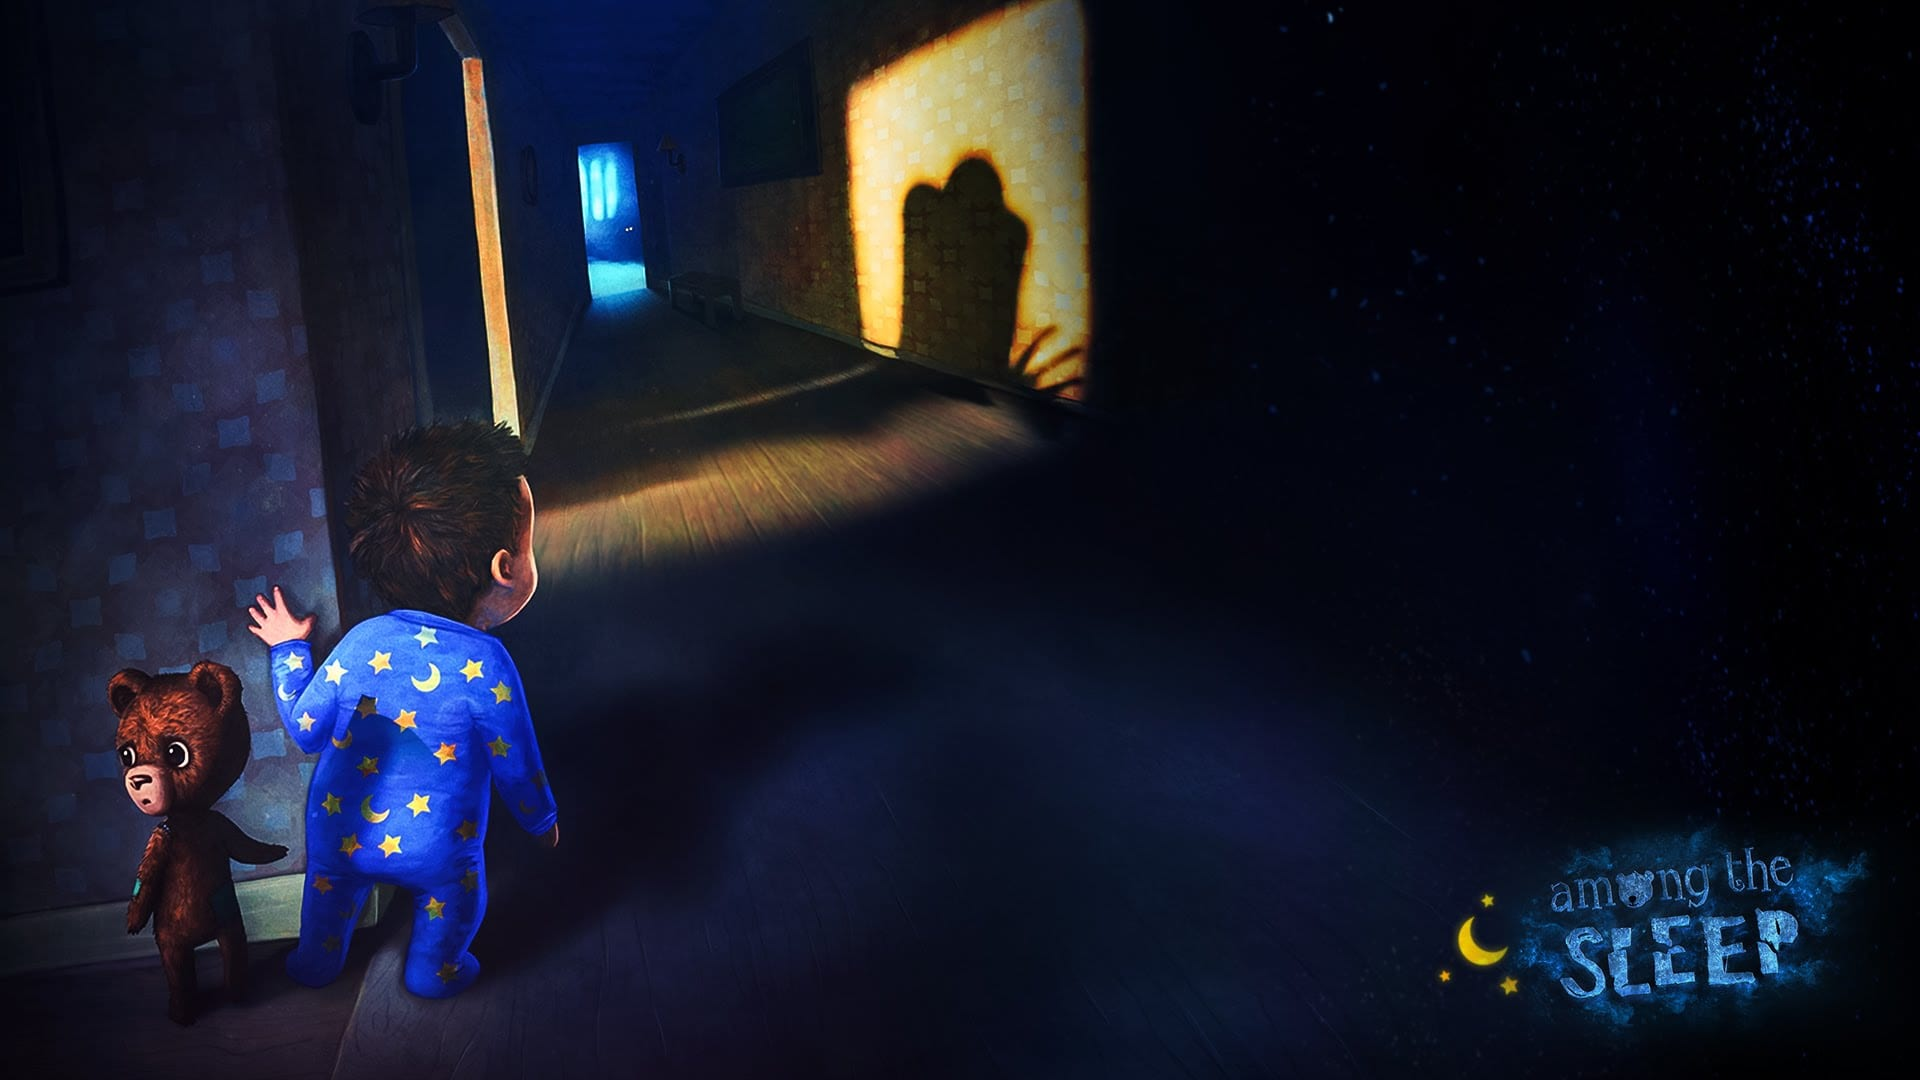 Gif As Wallpaper Iphone X Among The Sleep Review Gameluster